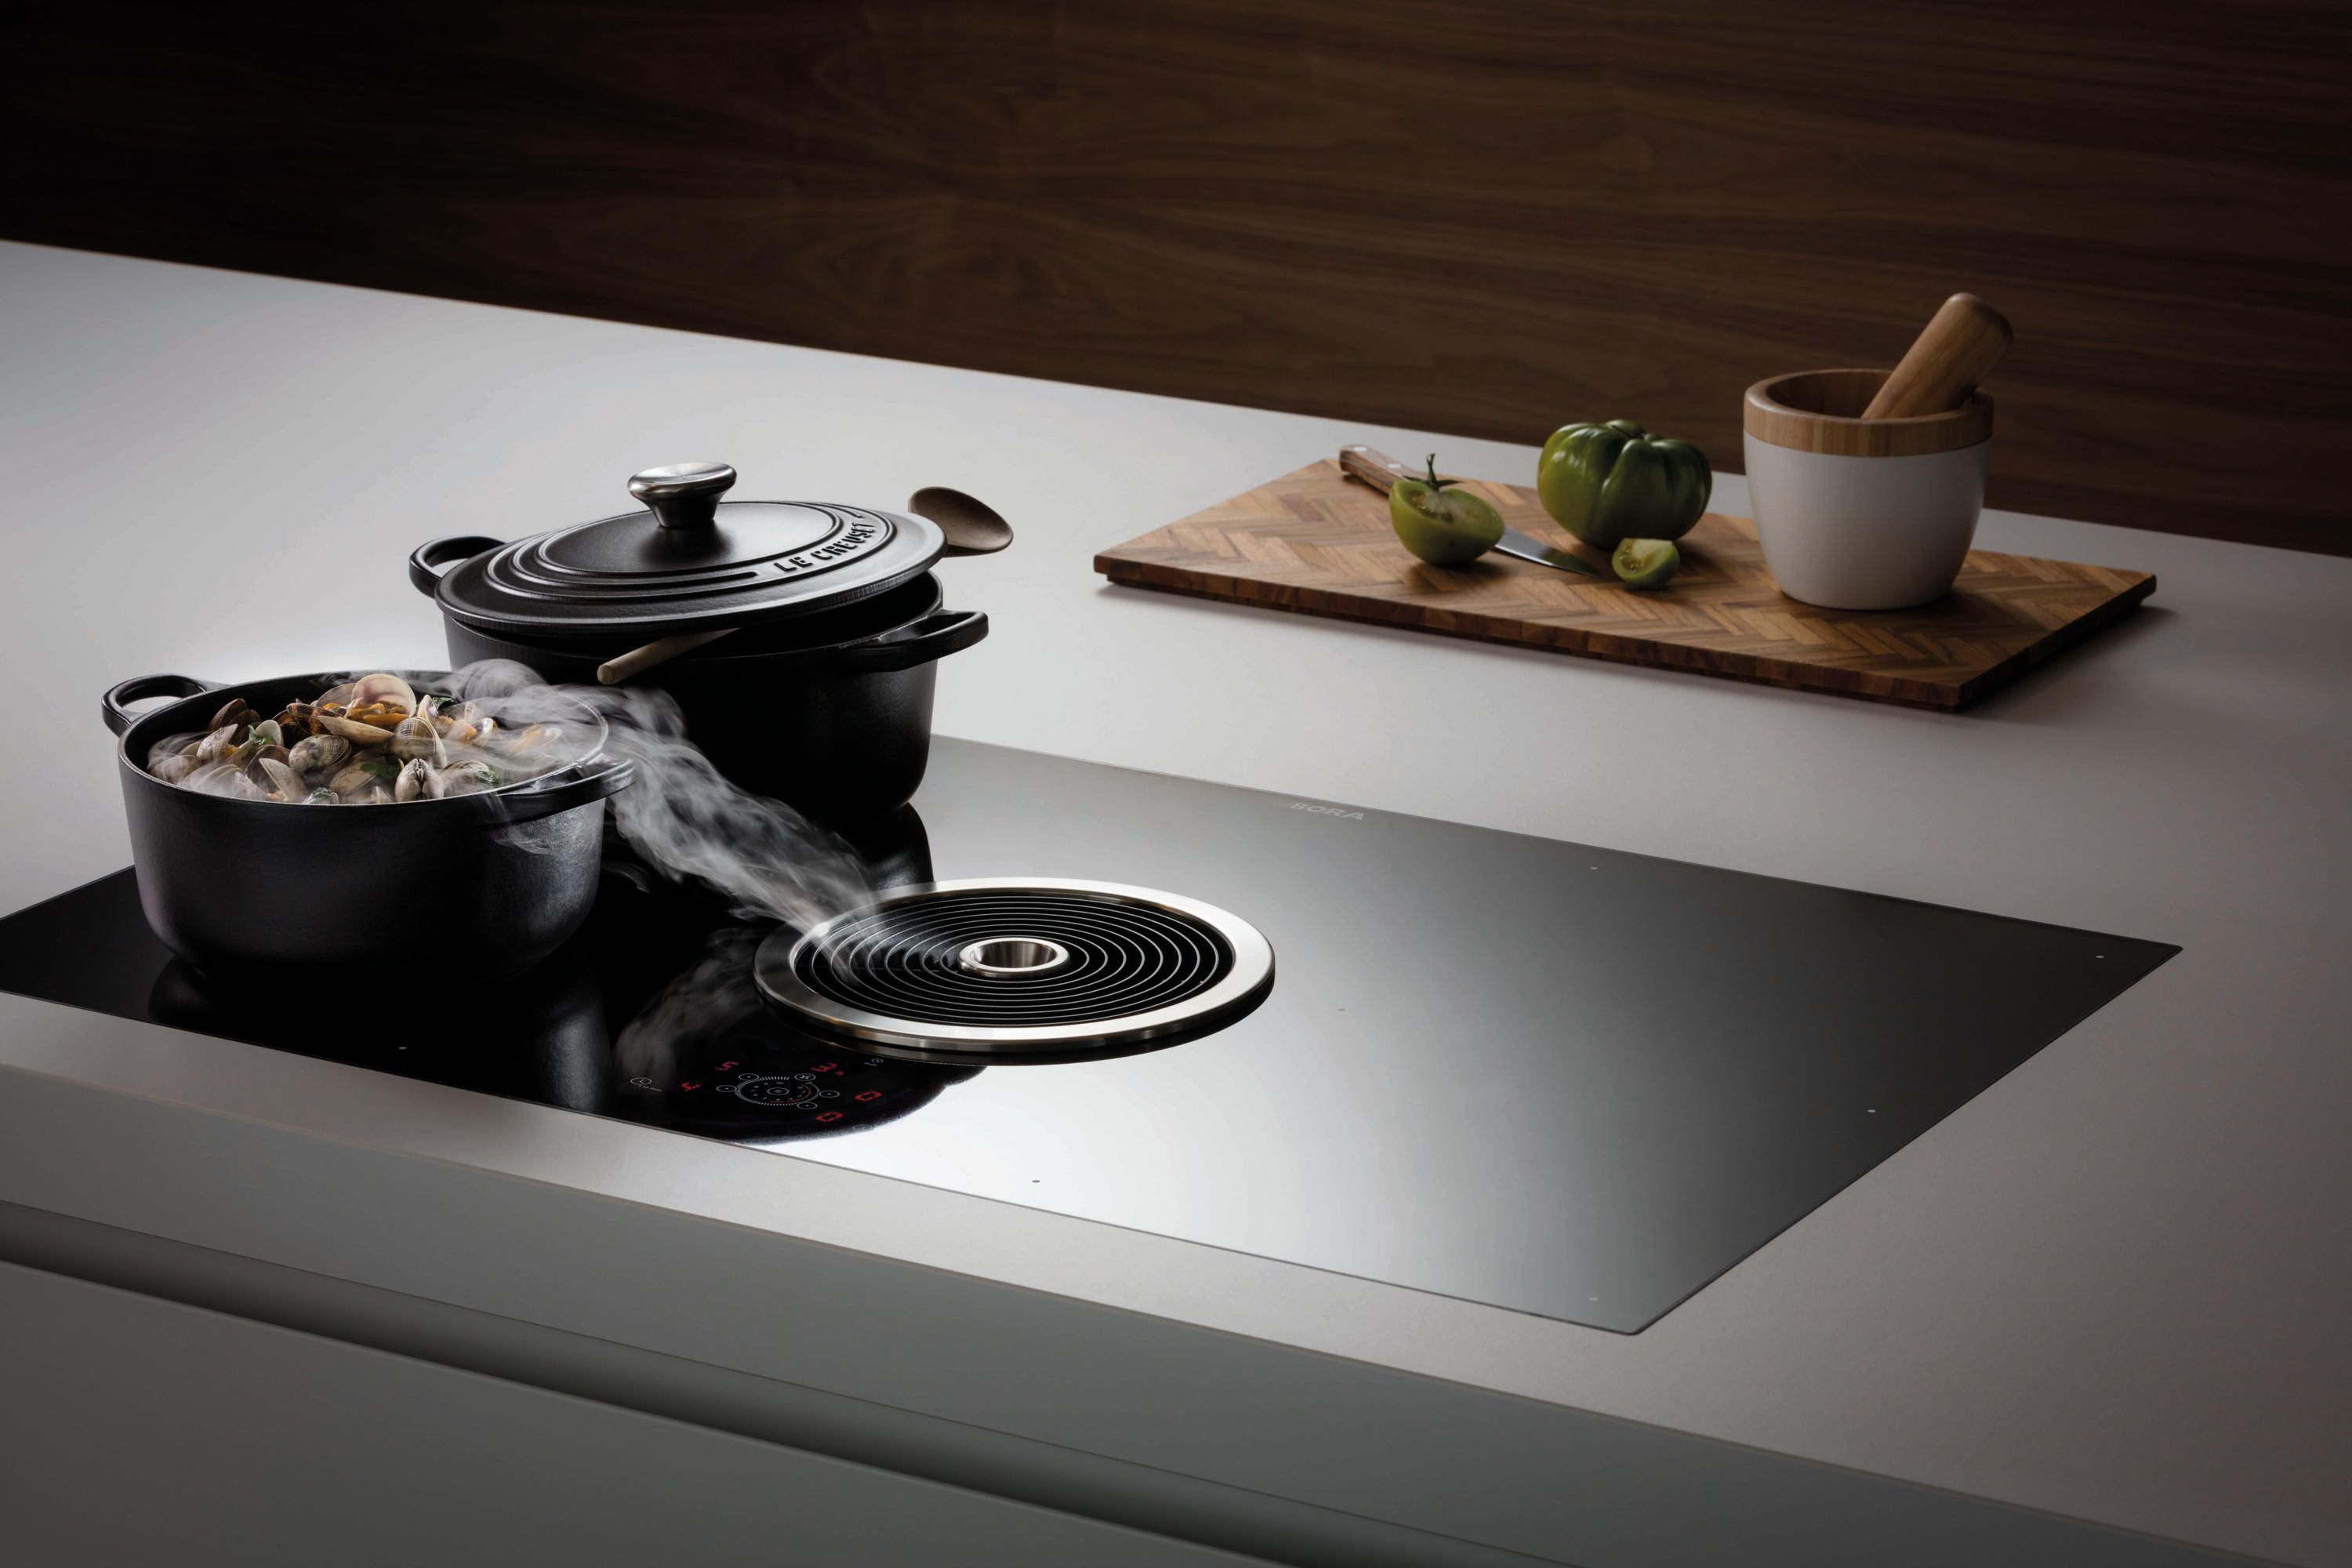 Bfia Surface Induction Glass Ceramic Cooktop With Integrated